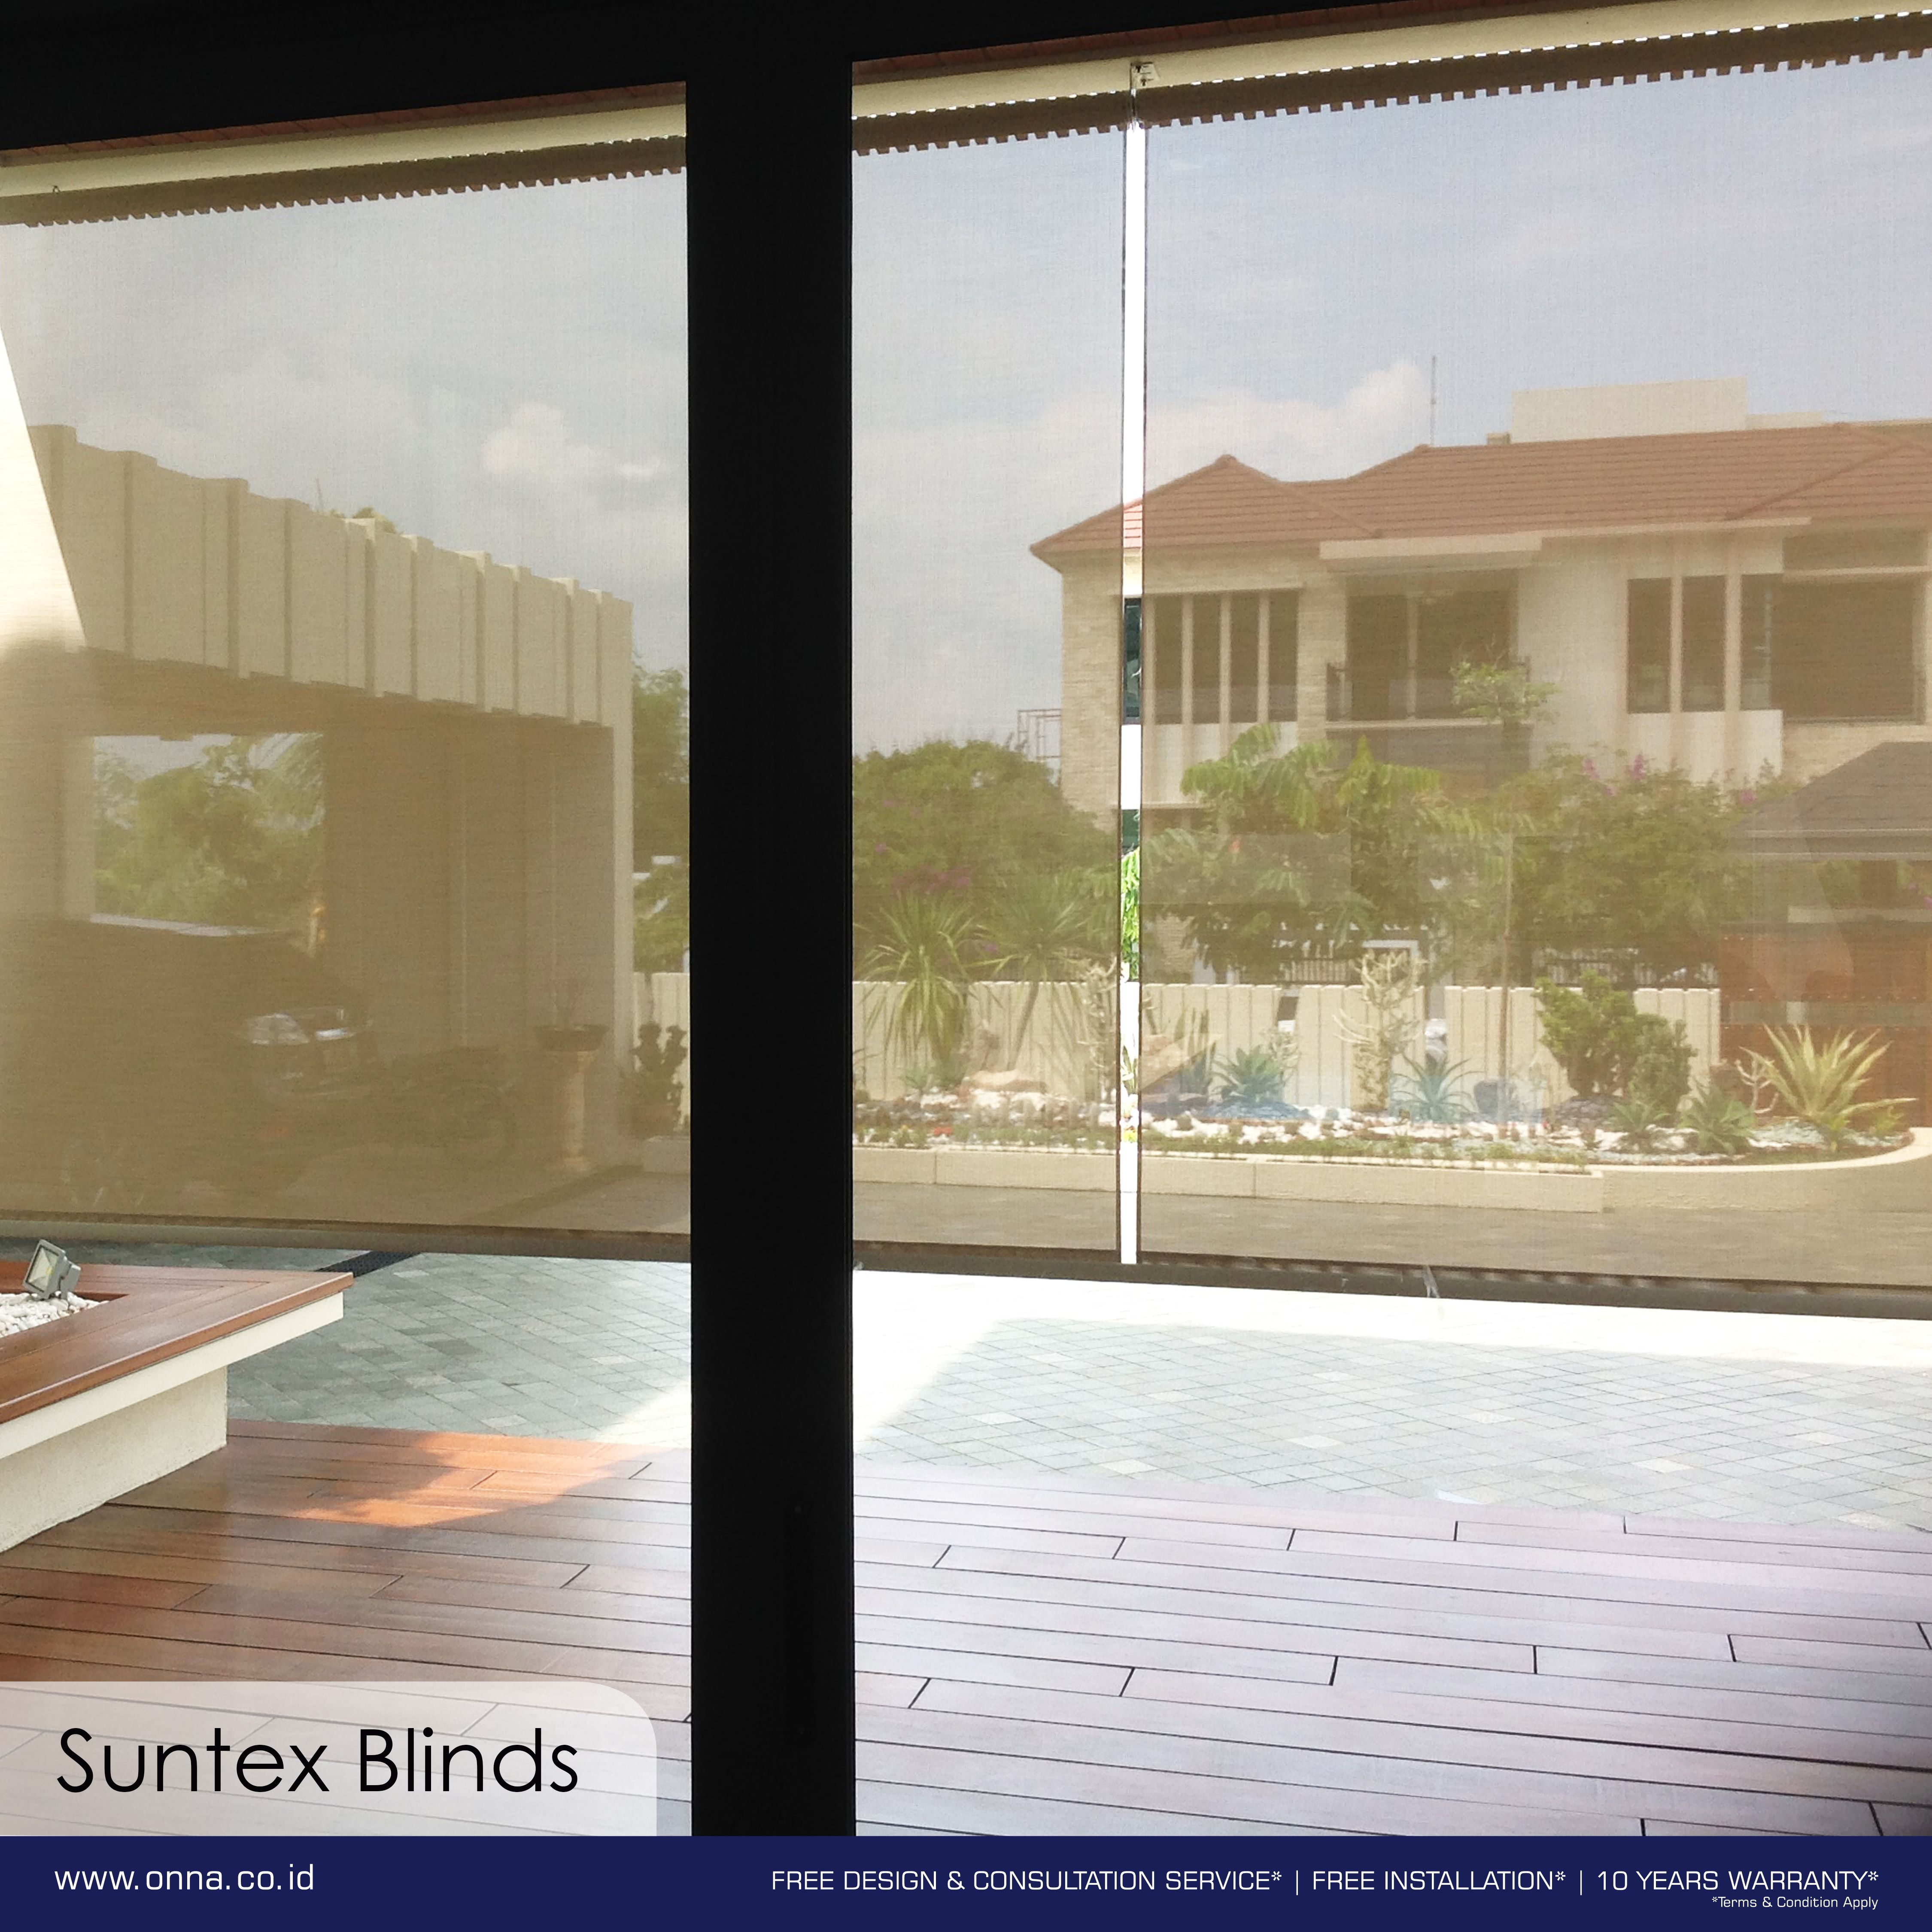 Outdoor blinds function just like indoor blinds but are more